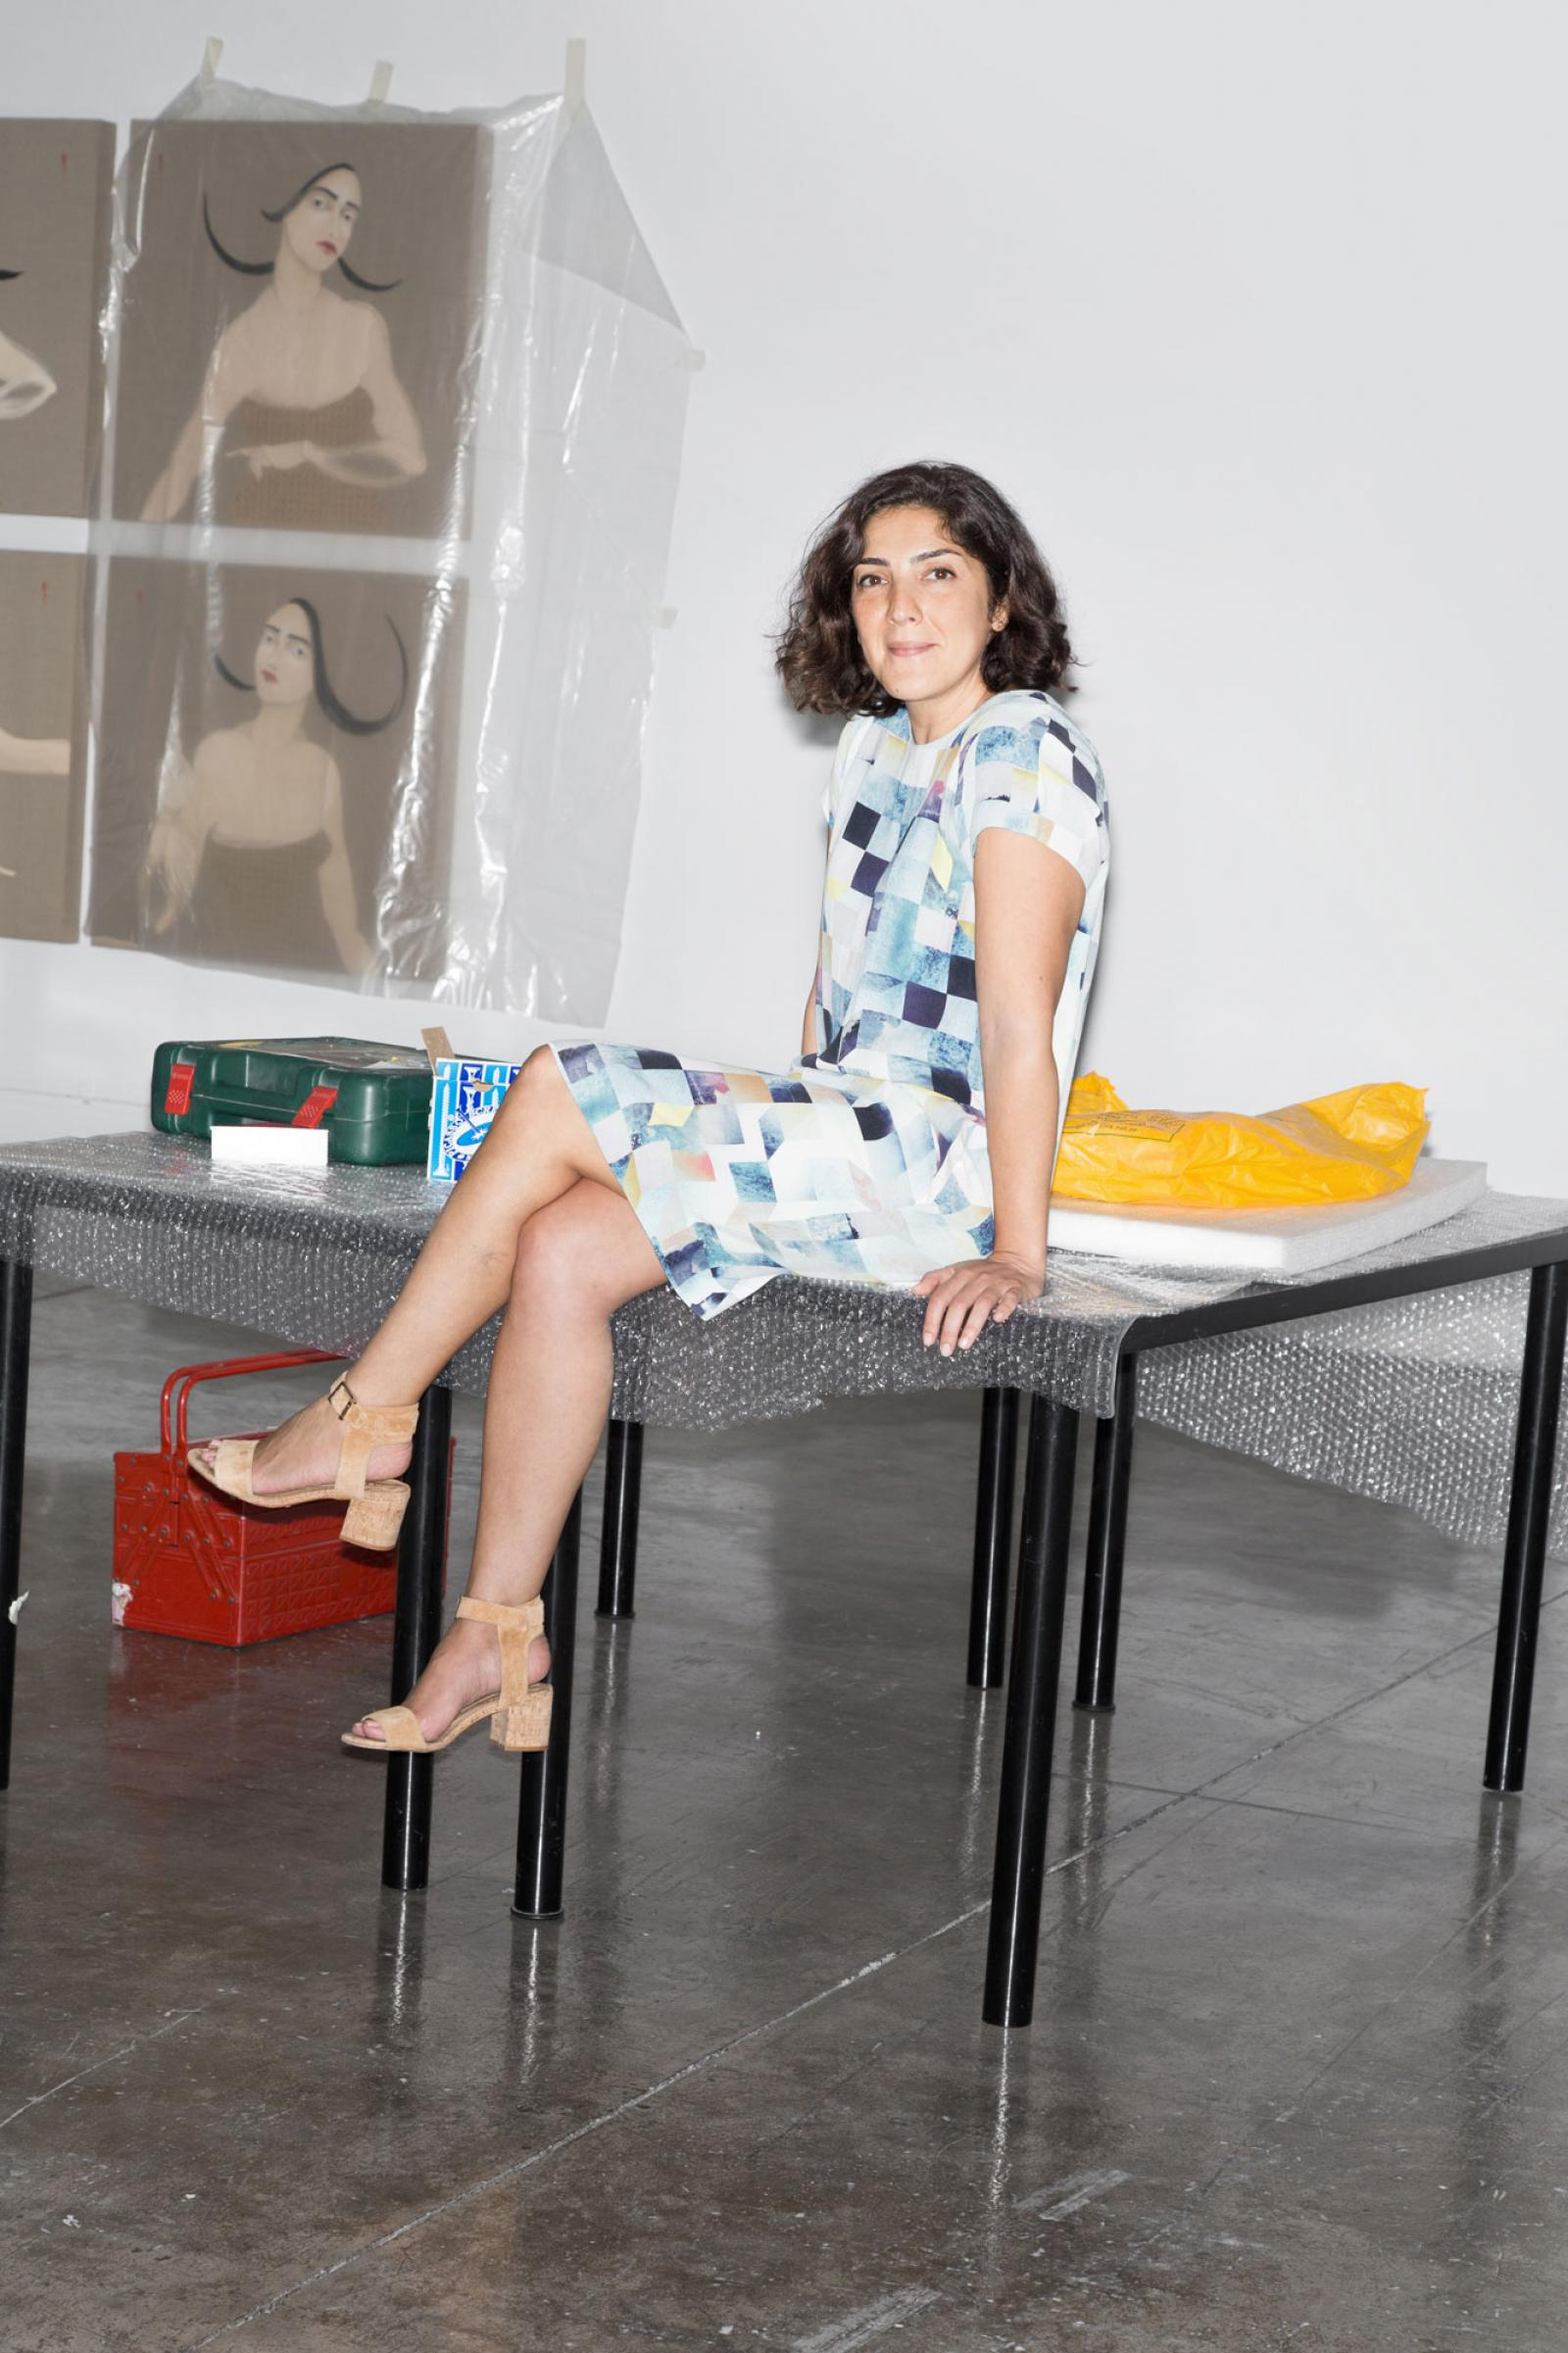 Sunny Rahbar, founder anddirector of The Third Line gallery